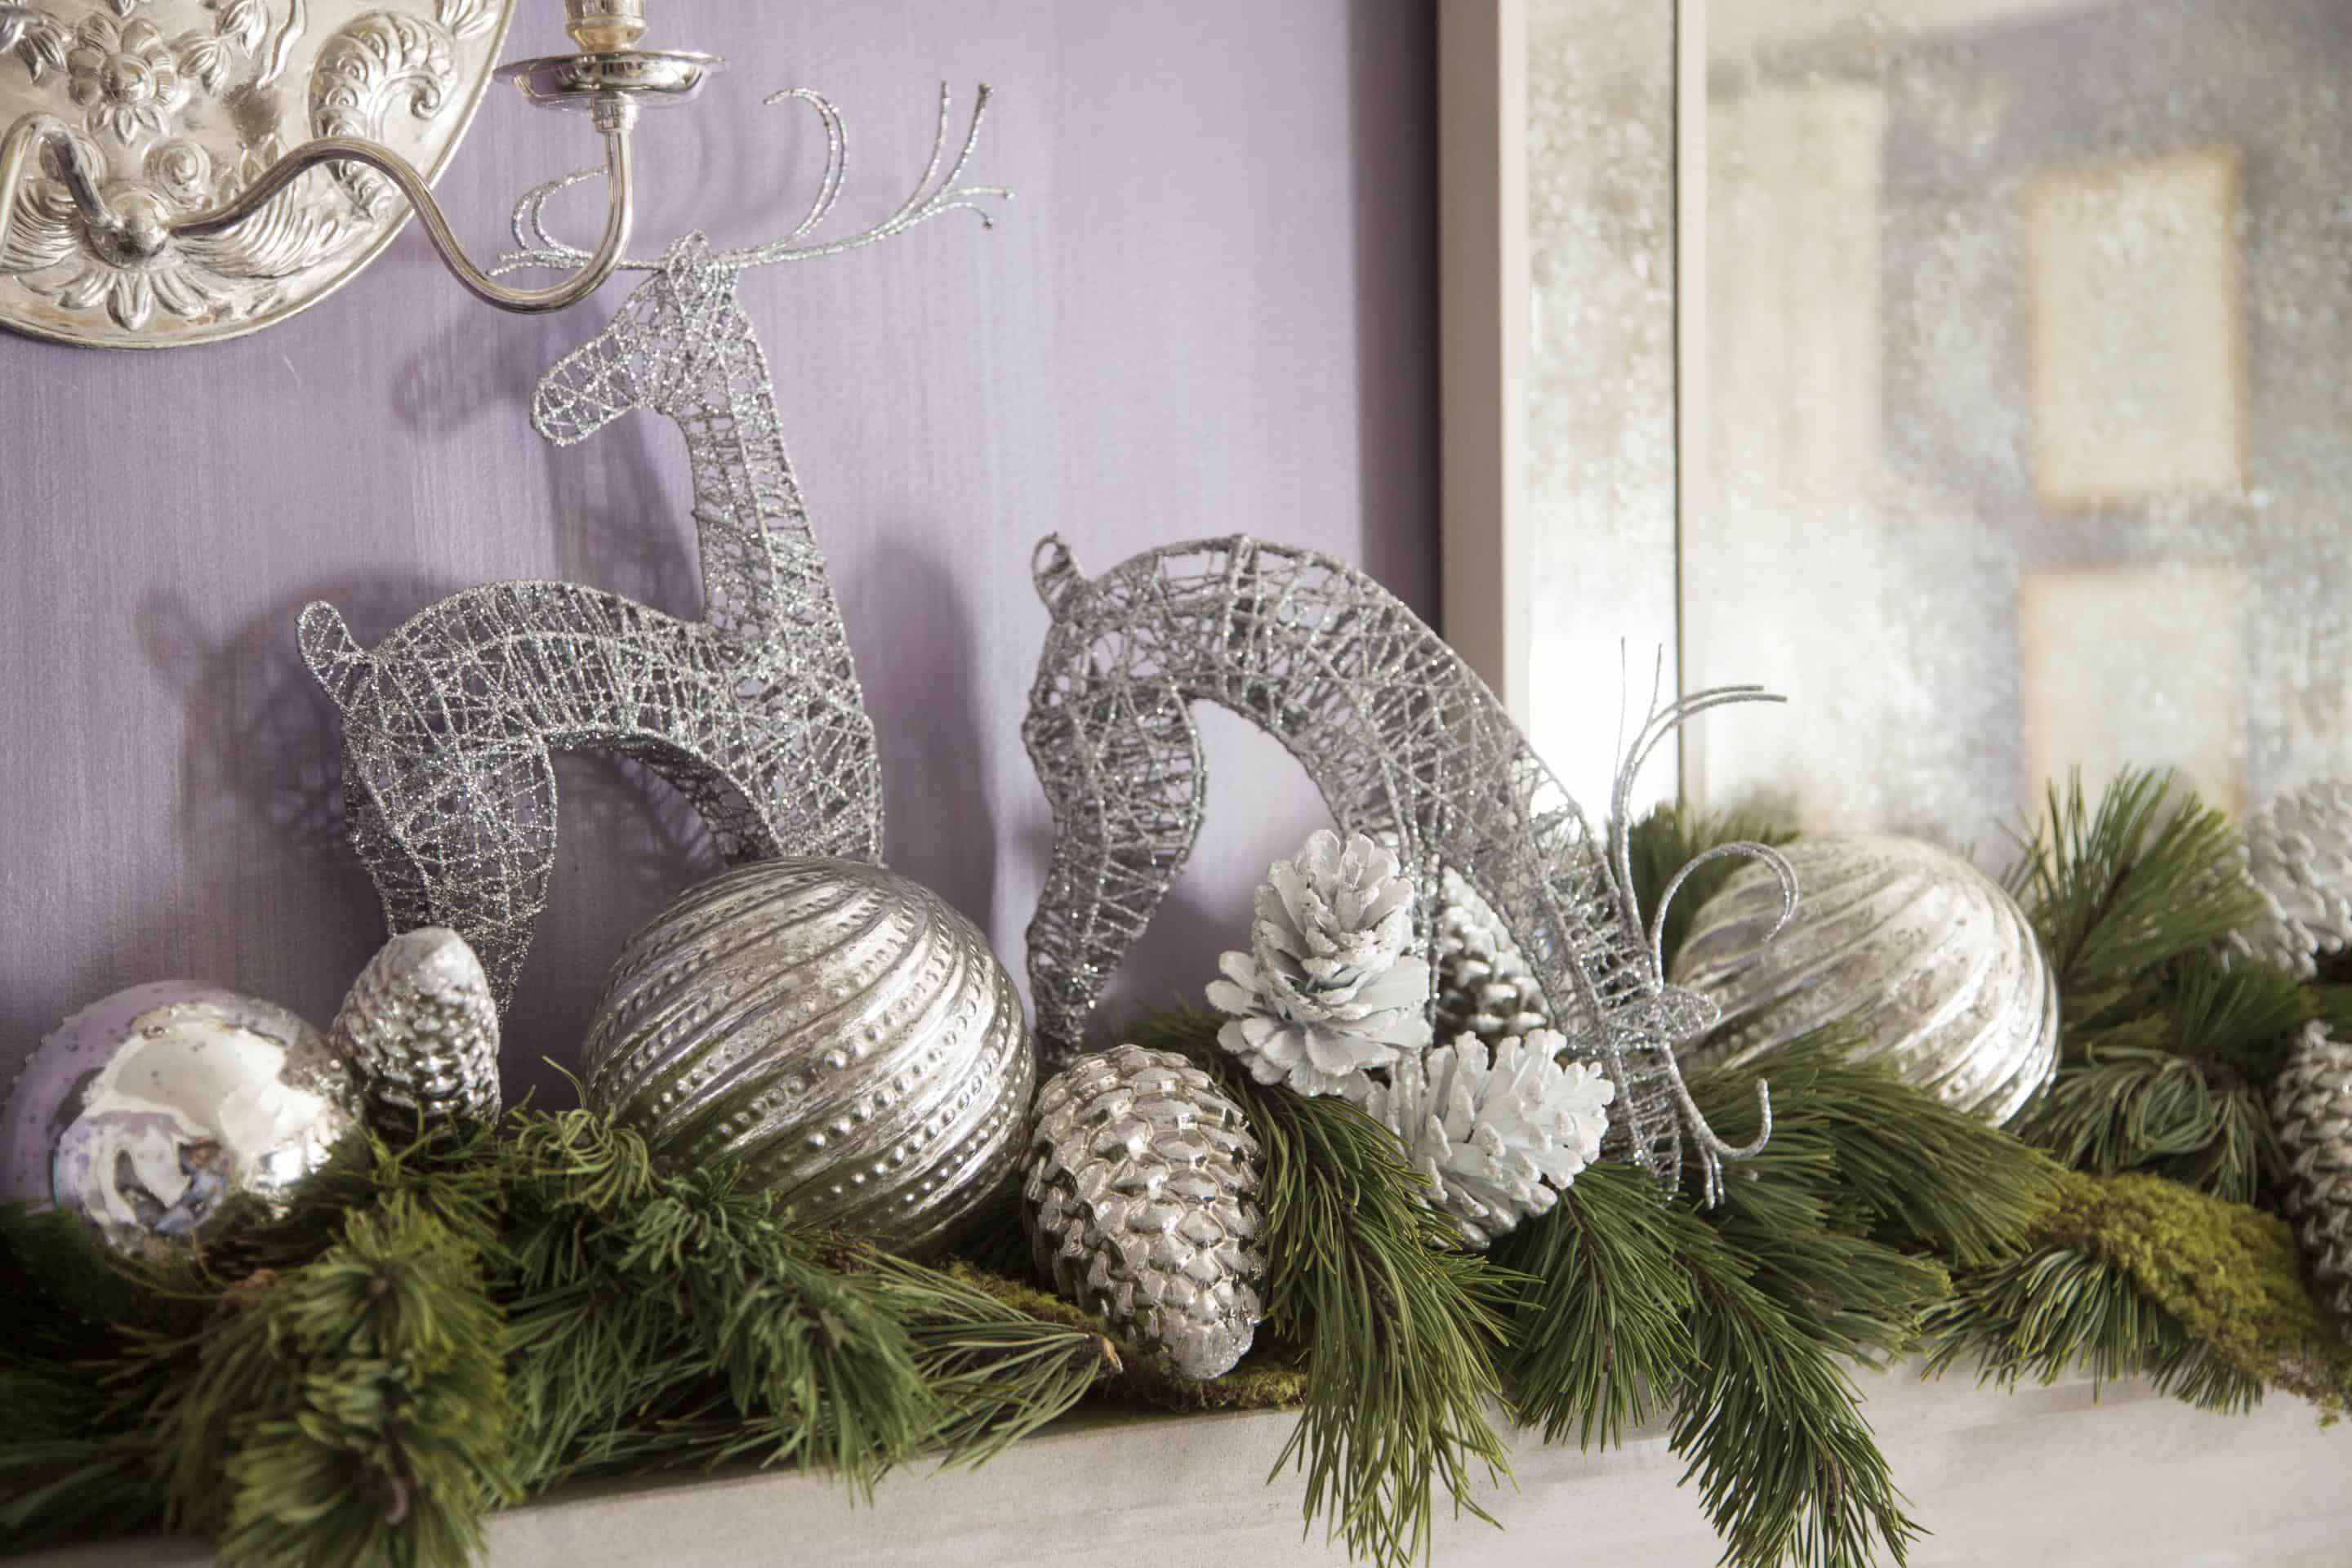 garland with ornaments